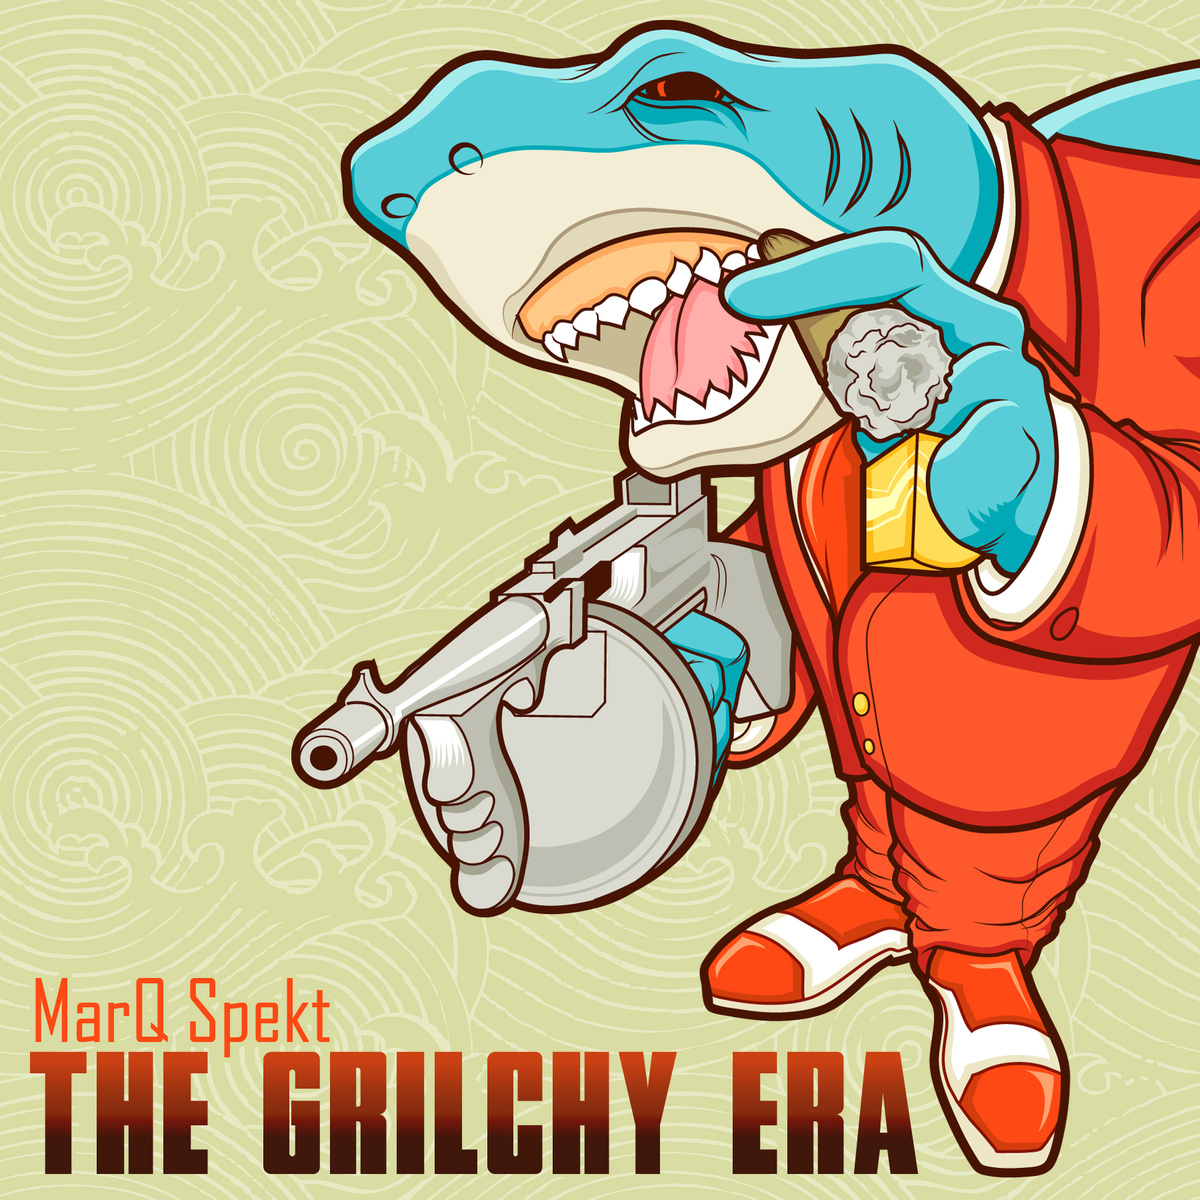 Marq_spekt_presenta_the_grilchy_era